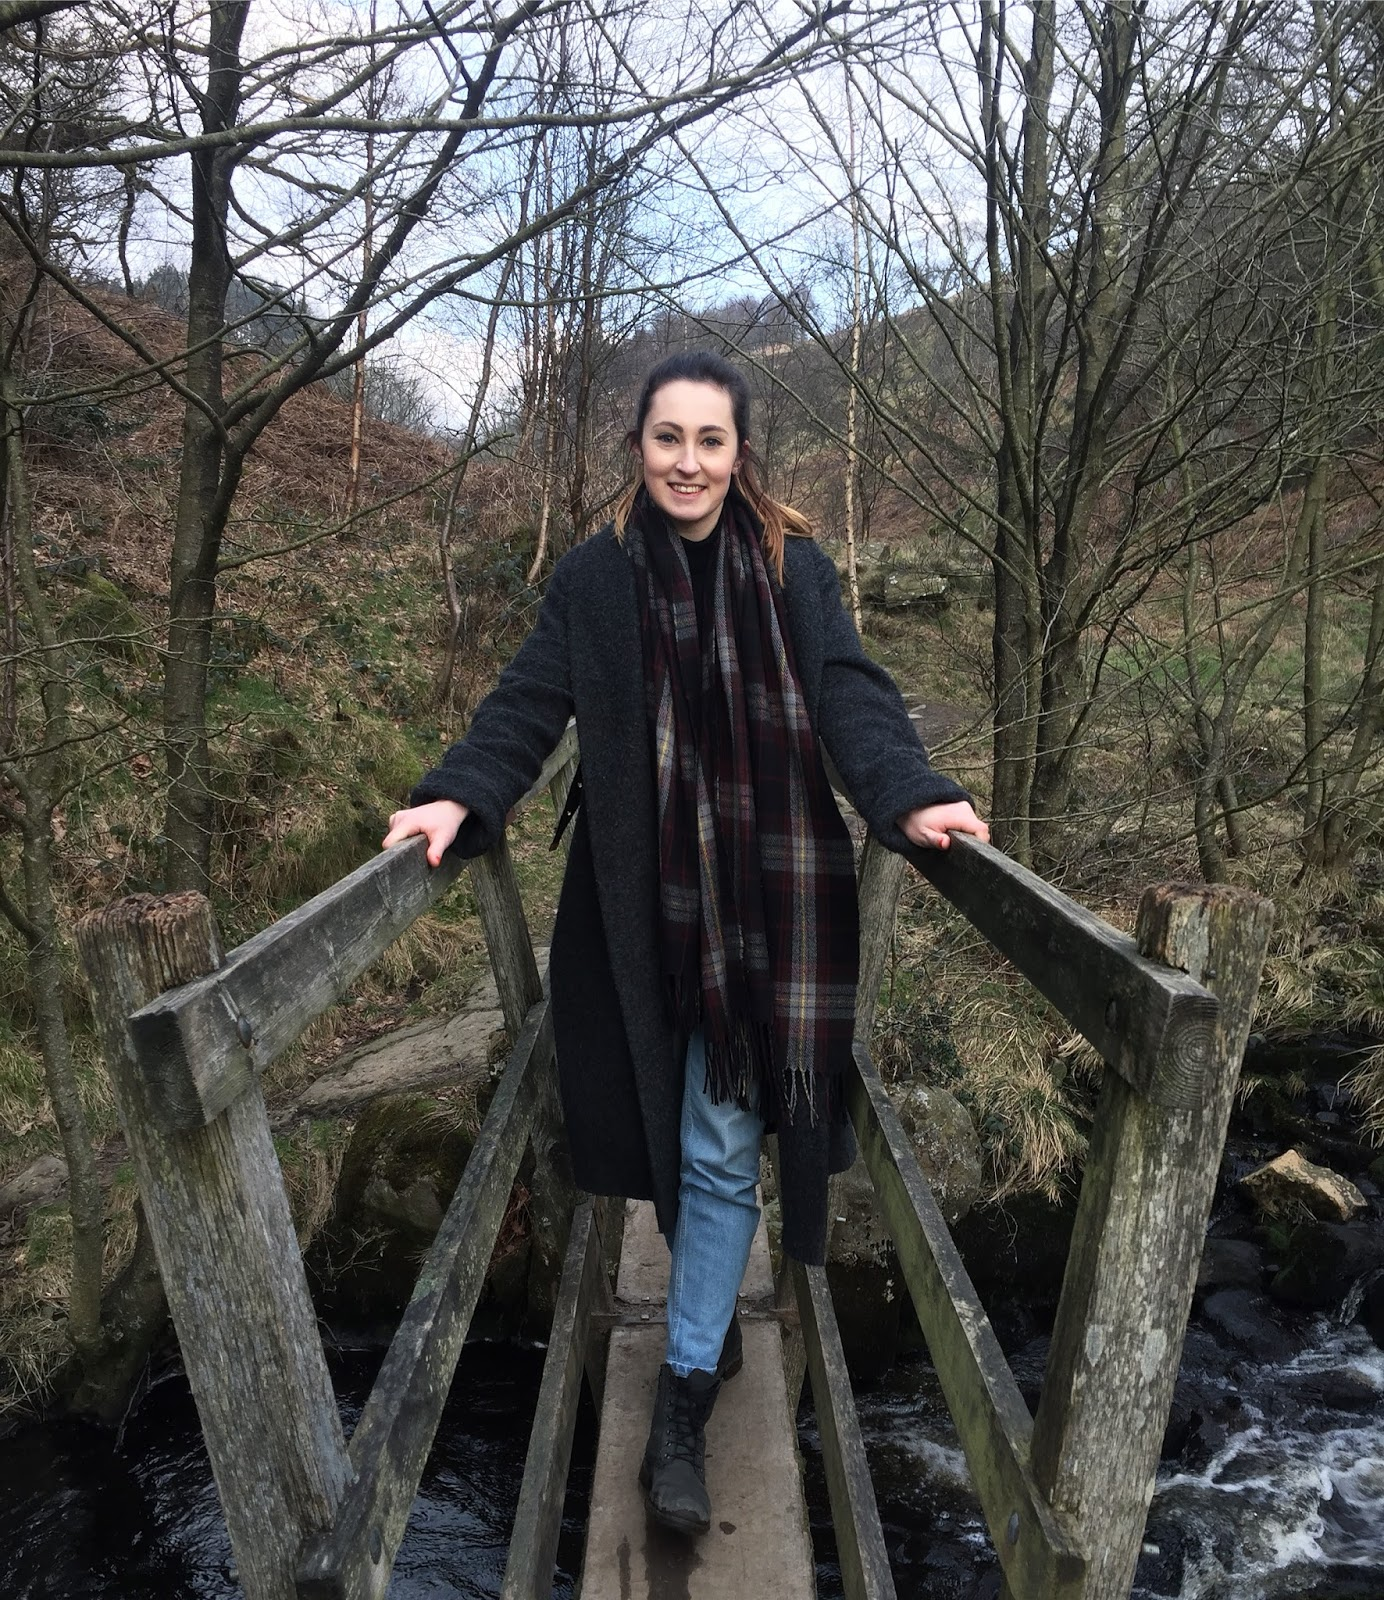 Walking over a bridge on a Yorkshire walk route